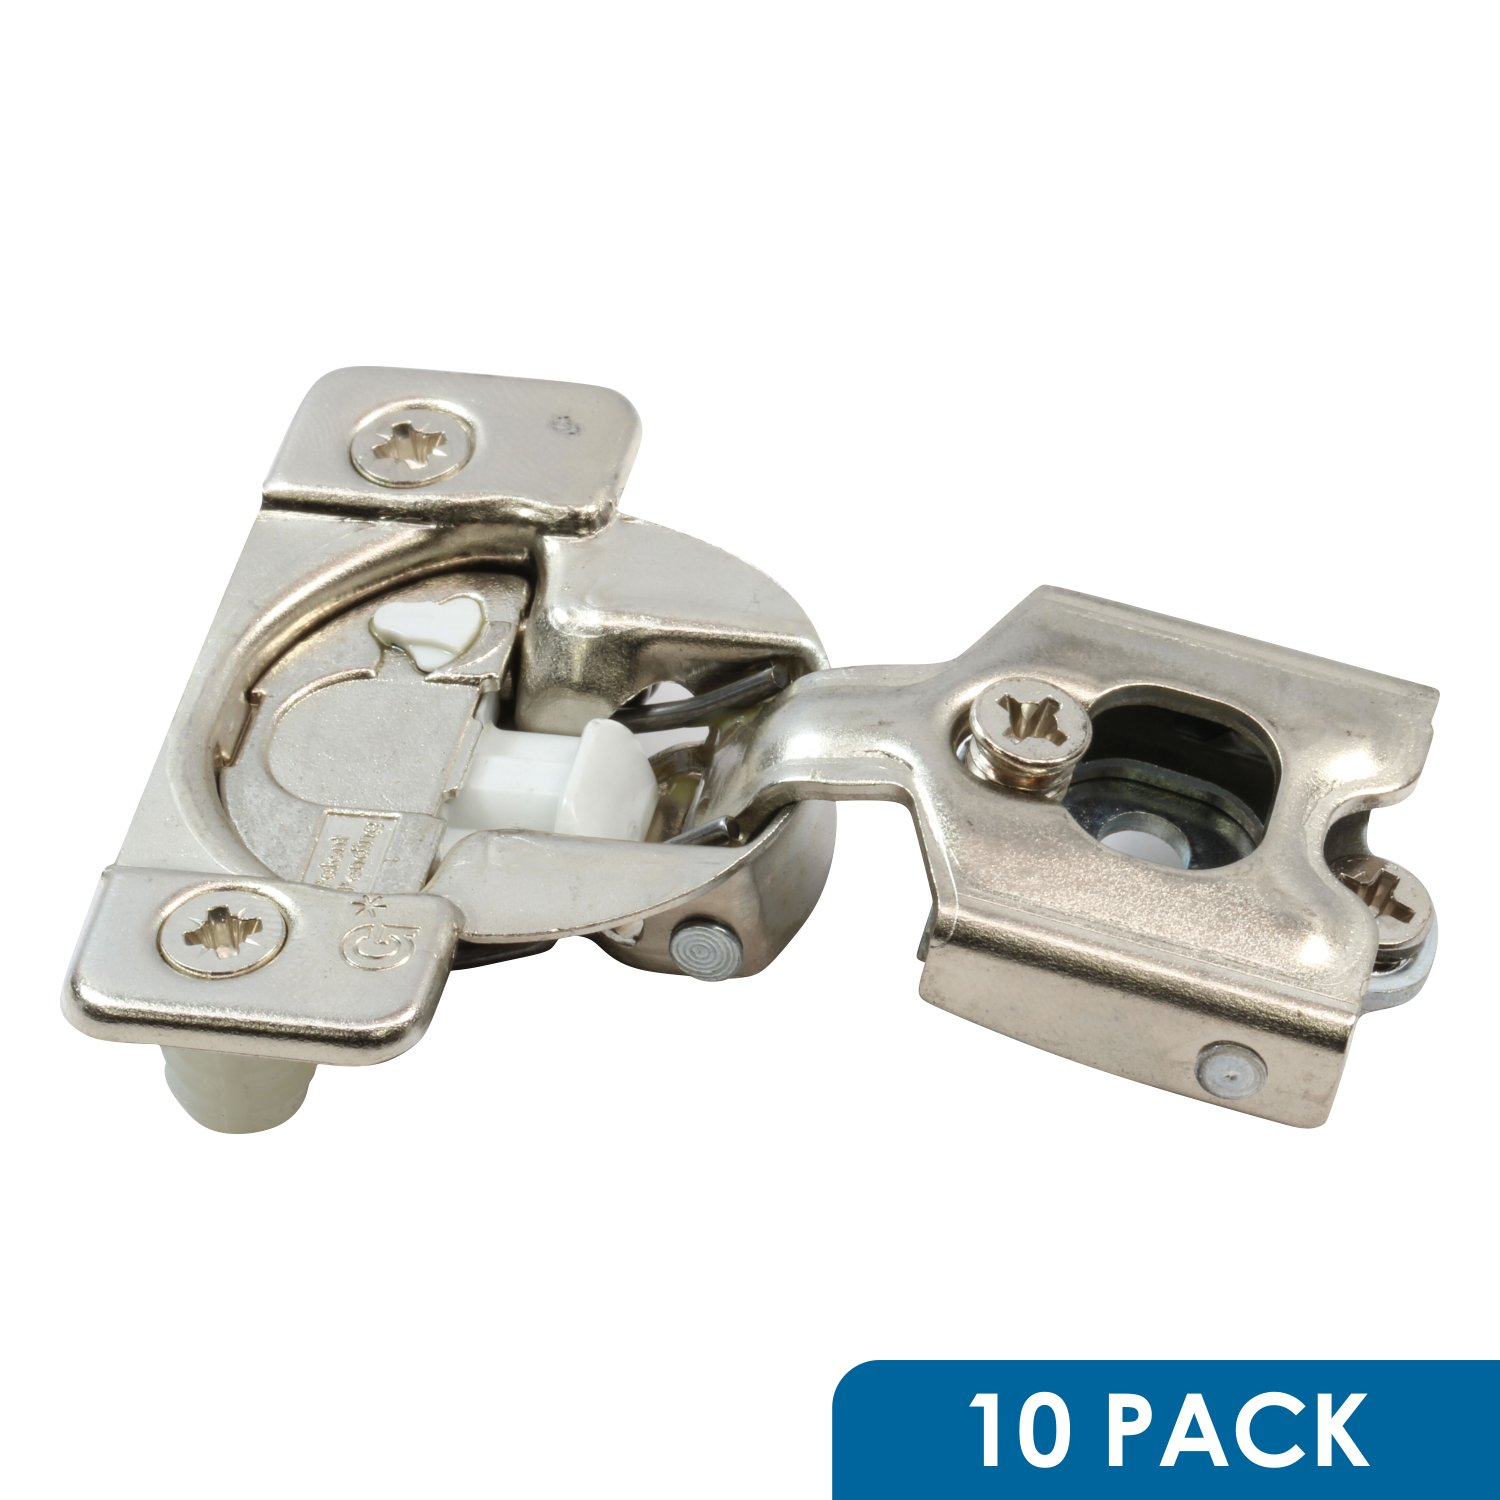 10 Pack Rok Hardware Grass TEC 108 Degree 1/2'' Overlay Soft Close Press in Compact Wrap Mount Cabinet Hinge 02824A-15 3-Way Adjustment 42mm Screw Hole Pattern